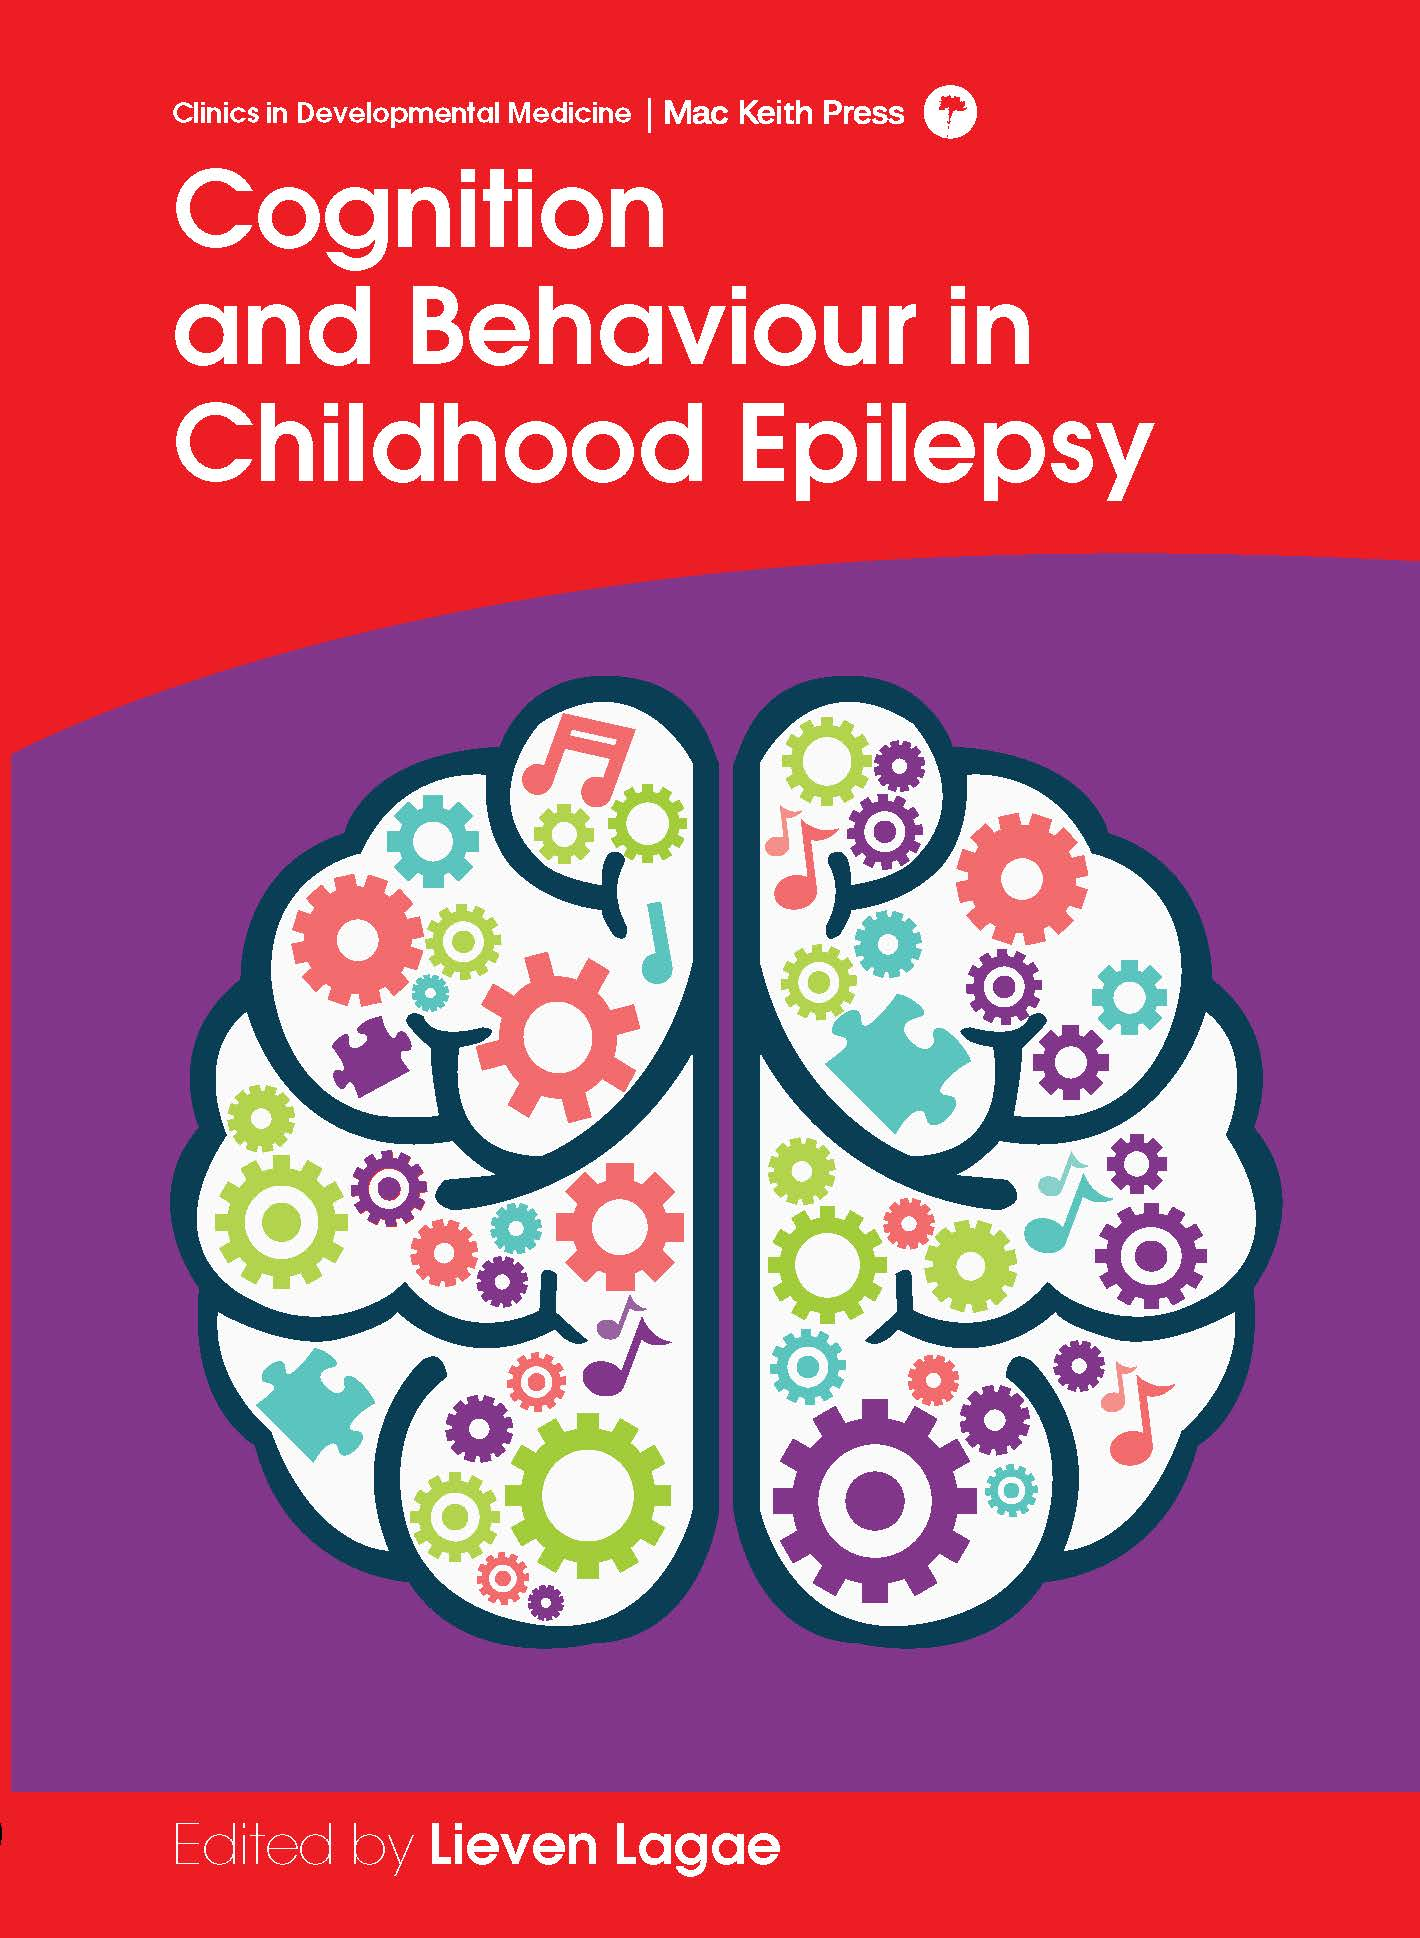 Mac Keith Press book Cognition and Behaviour in Childhood Epilepsy, Lieven Lagae